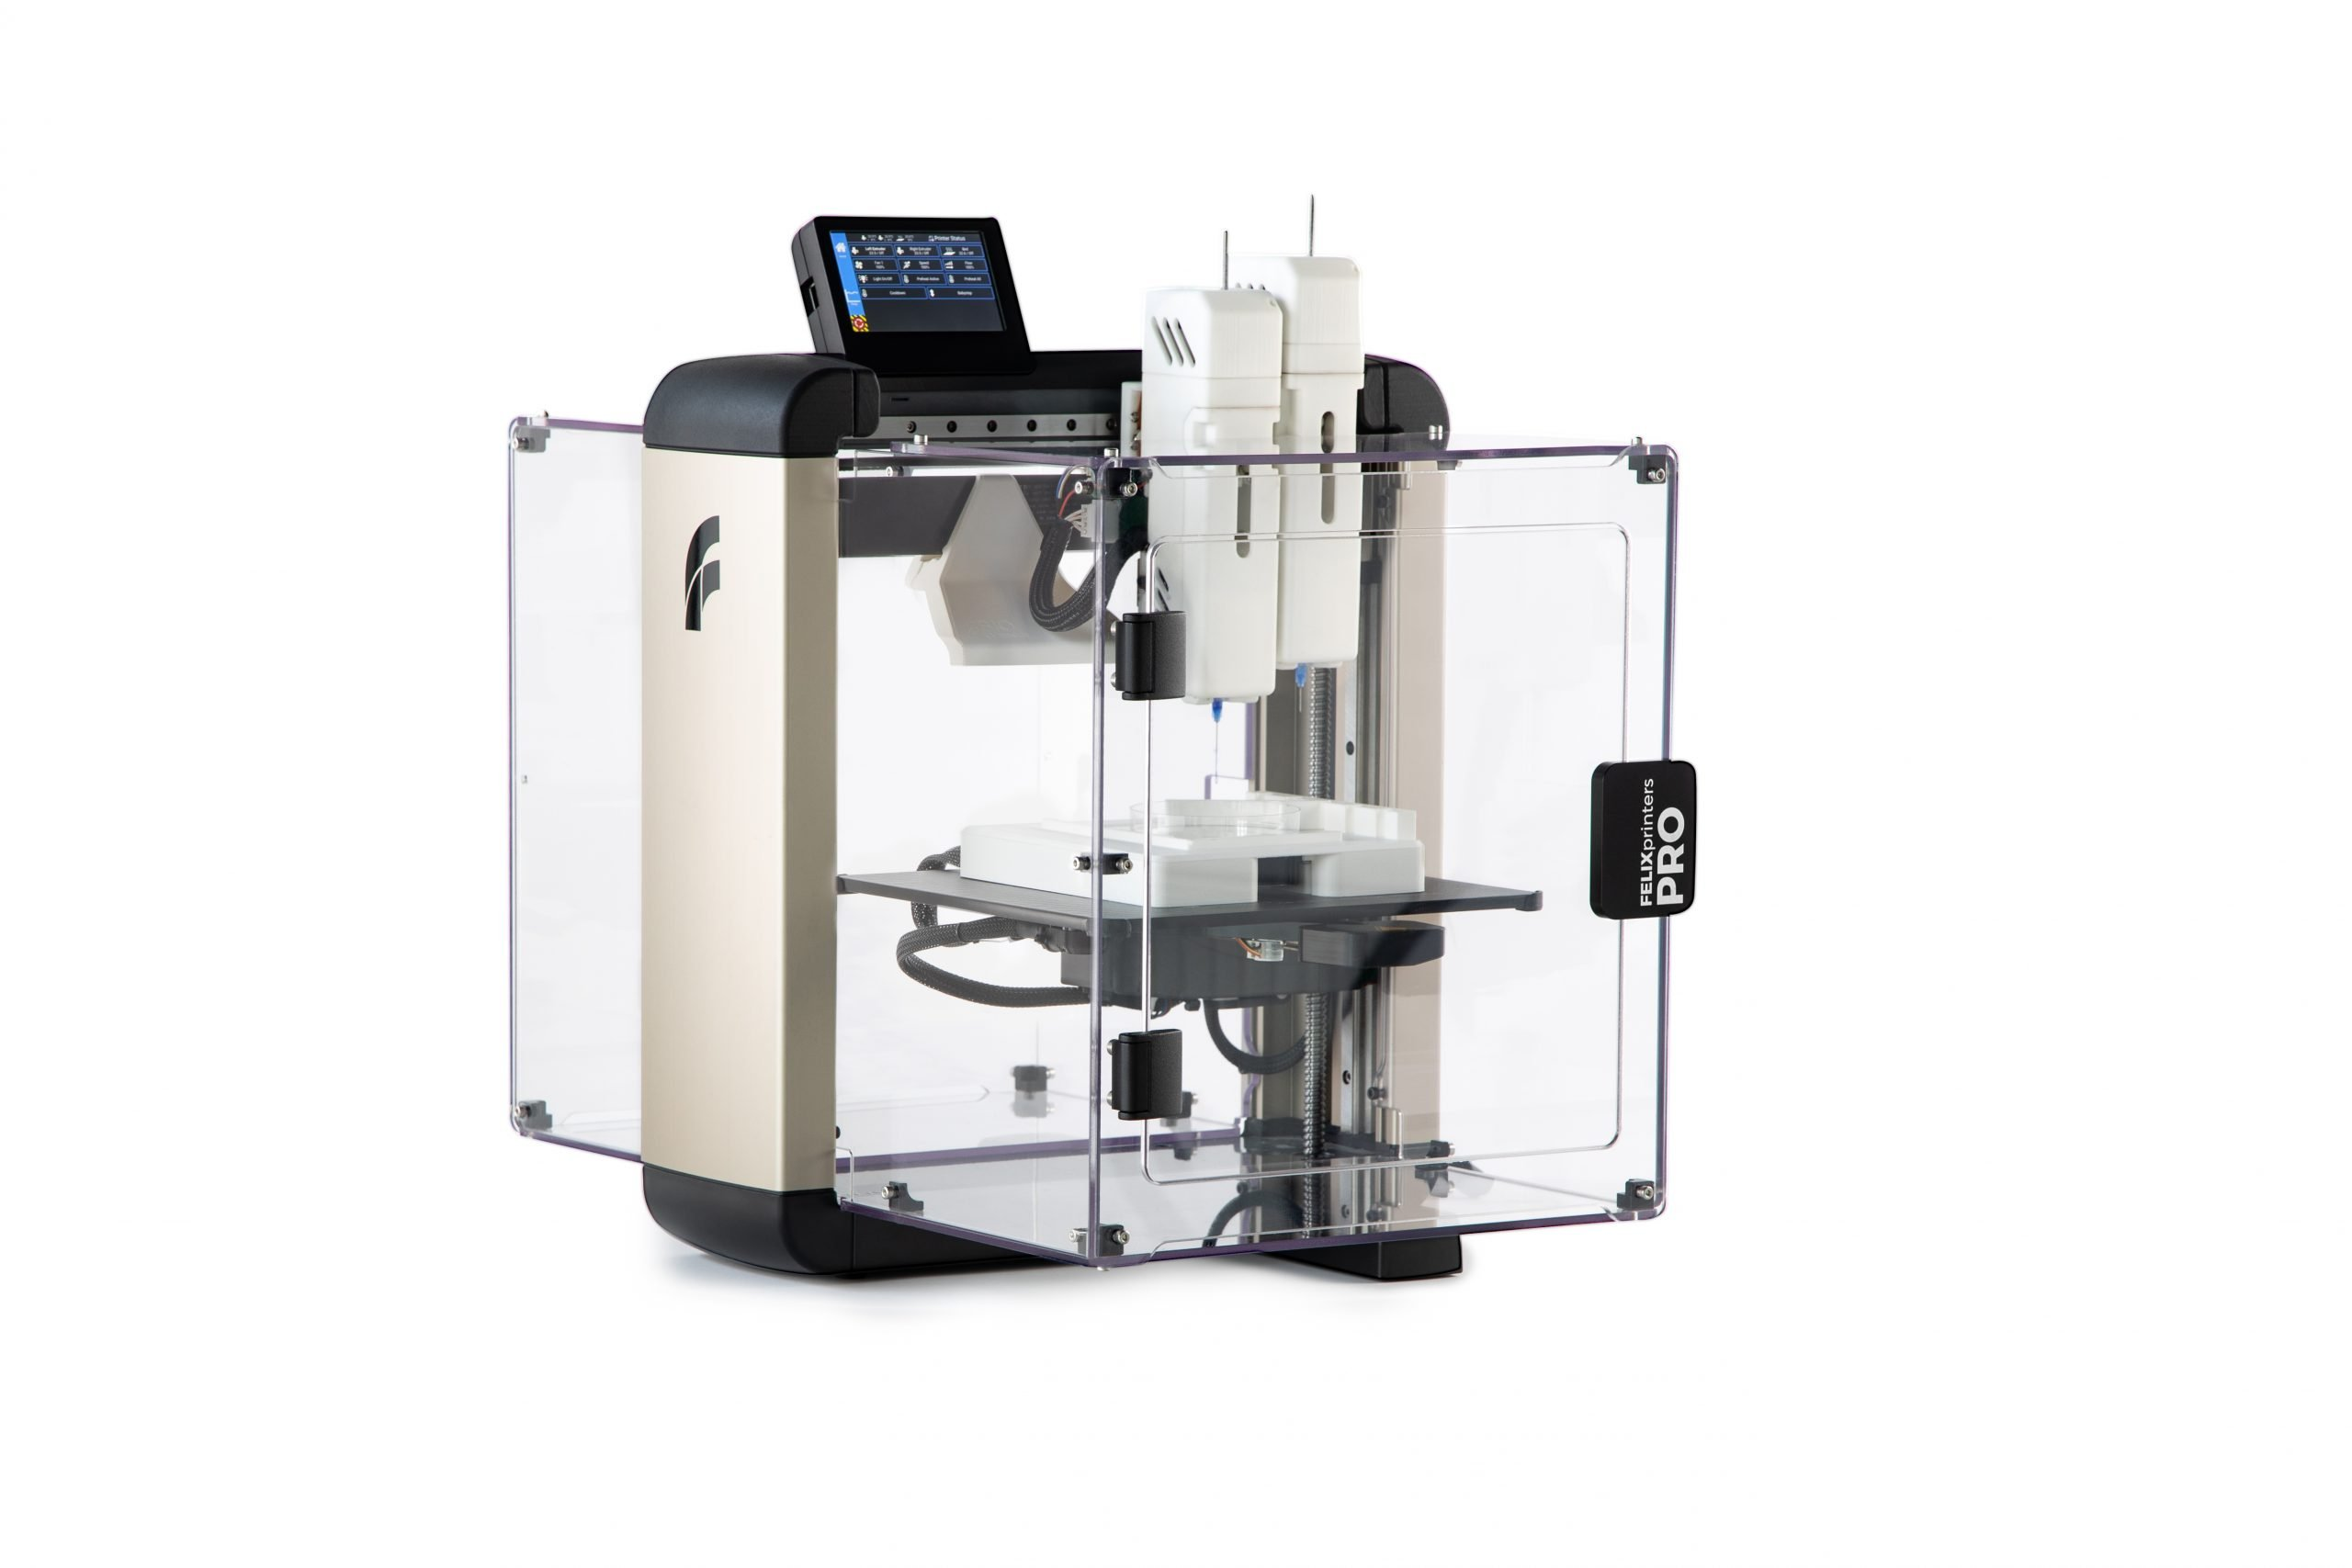 FELIXprinters bioprinter